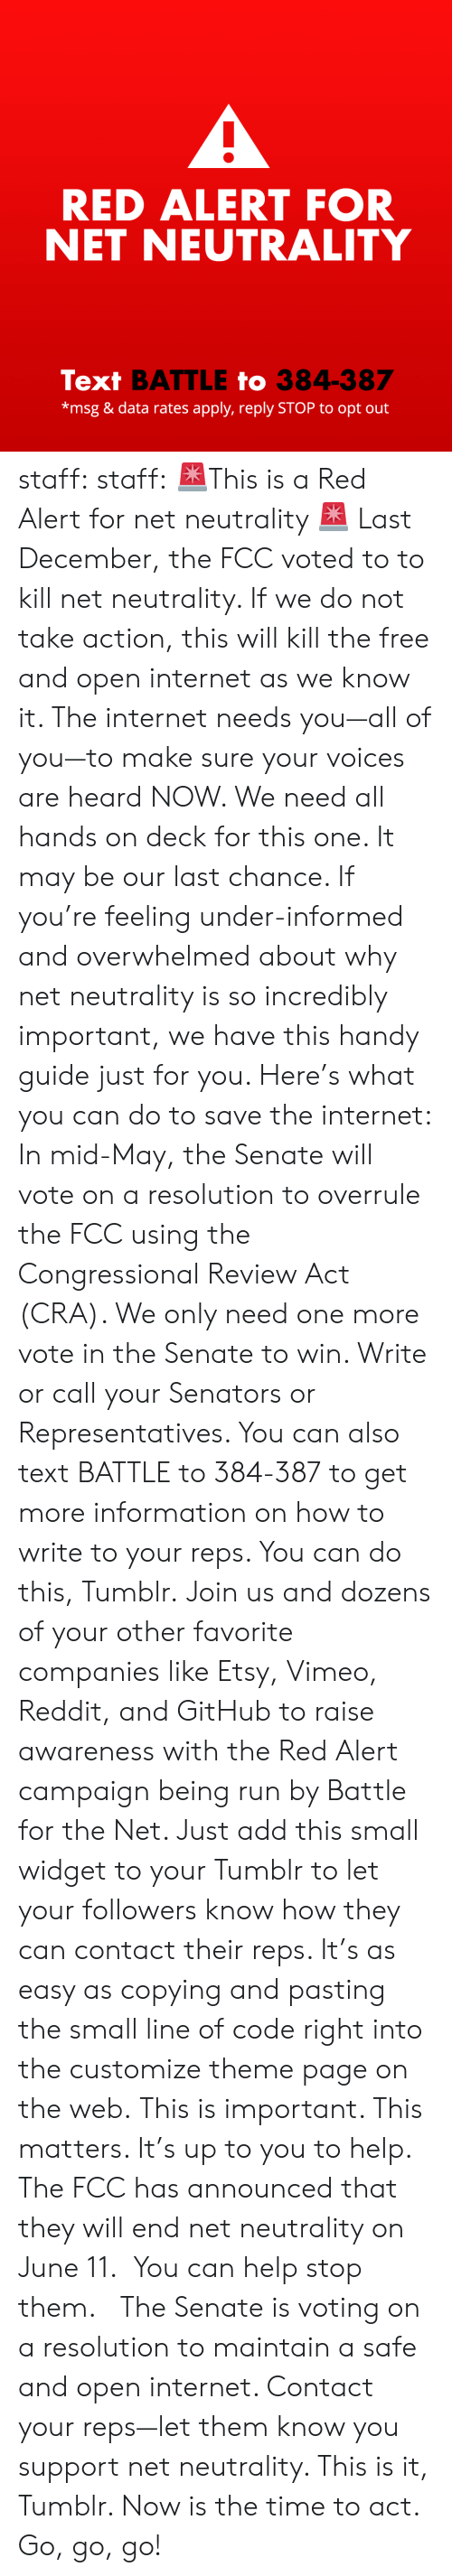 Internet, Reddit, and Run: RED ALERT FOR  NET NEUTRALITY  Text BATTLE to 384-387  *msg & data rates apply, reply STOP to opt out staff: staff:  🚨This is a Red Alert for net neutrality 🚨 Last December, the FCC voted to to kill net neutrality. If we do not take action, this will kill the free and open internet as we know it. The internet needs you—all of you—to make sure your voices are heard NOW.  We need all hands on deck for this one. It may be our last chance. If you're feeling under-informed and overwhelmed about why net neutrality is so incredibly important, we have this handy guide just for you.  Here's what you can do to save the internet: In mid-May, the Senate will vote on a resolution to overrule the FCC using the Congressional Review Act (CRA). We only need one more vote in the Senate to win. Write or call your Senators or Representatives. You can also text BATTLE to 384-387 to get more information on how to write to your reps. You can do this, Tumblr. Join us and dozens of your other favorite companies like Etsy, Vimeo, Reddit, and GitHub to raise awareness with the Red Alert campaign being run by Battle for the Net. Just add this small widget to your Tumblr to let your followers know how they can contact their reps. It's as easy as copying and pasting the small line of code right into the customize theme page on the web. This is important. This matters. It's up to you to help.  The FCC has announced that they will end net neutrality on June 11. You can help stop them. The Senate is voting on a resolution to maintain a safe and open internet. Contact your reps—let them know you support net neutrality. This is it, Tumblr. Now is the time to act. Go, go, go!